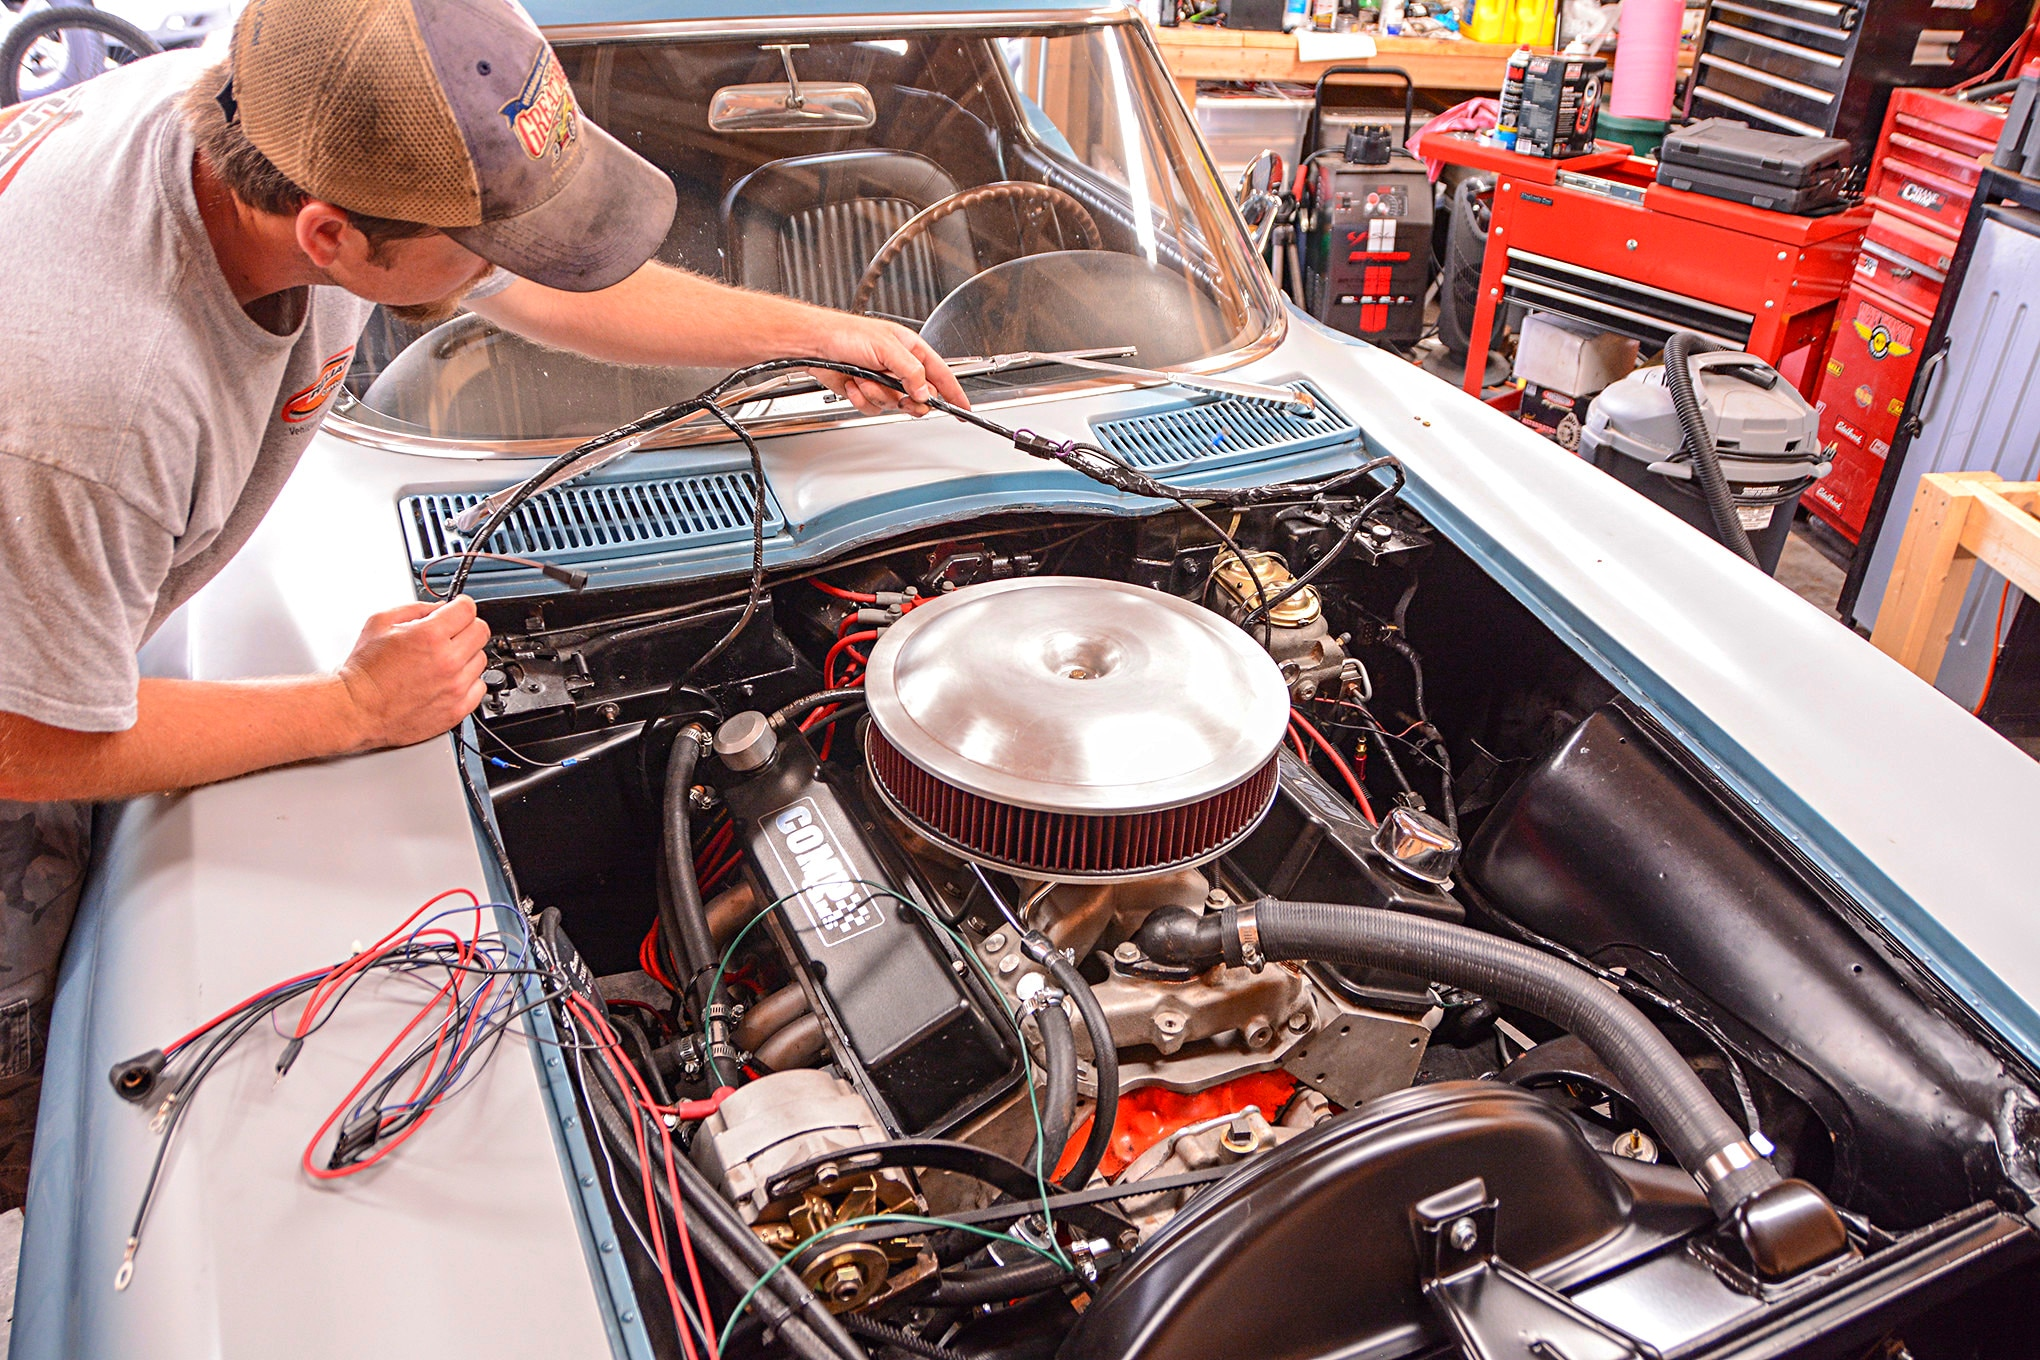 medium resolution of corvette wiring gremlins solved and charging system upgrade 1964 corvette wiring harness